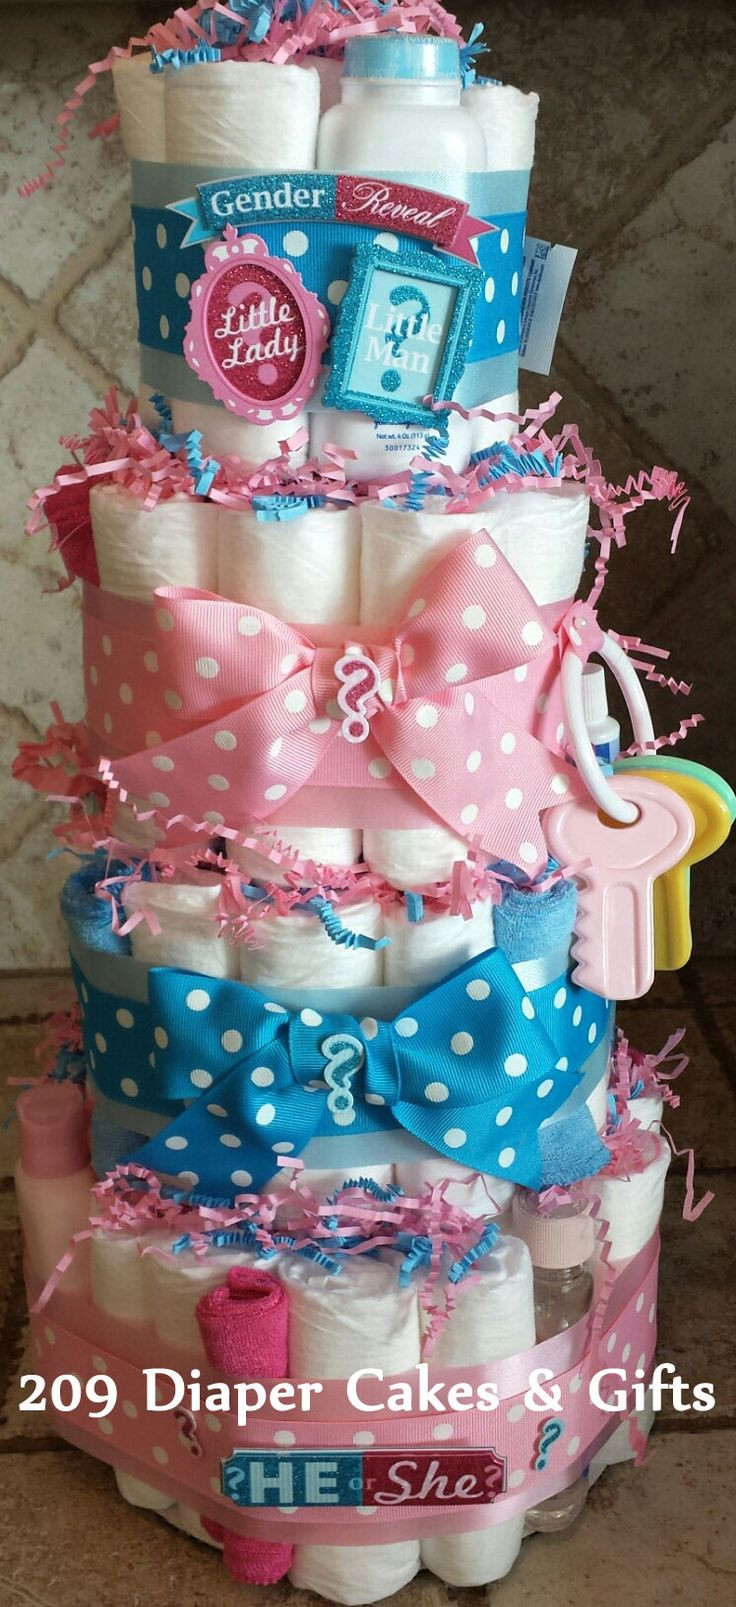 Best ideas about Gift Ideas For Baby Reveal Party . Save or Pin Best 25 Gender reveal ts ideas on Pinterest Now.